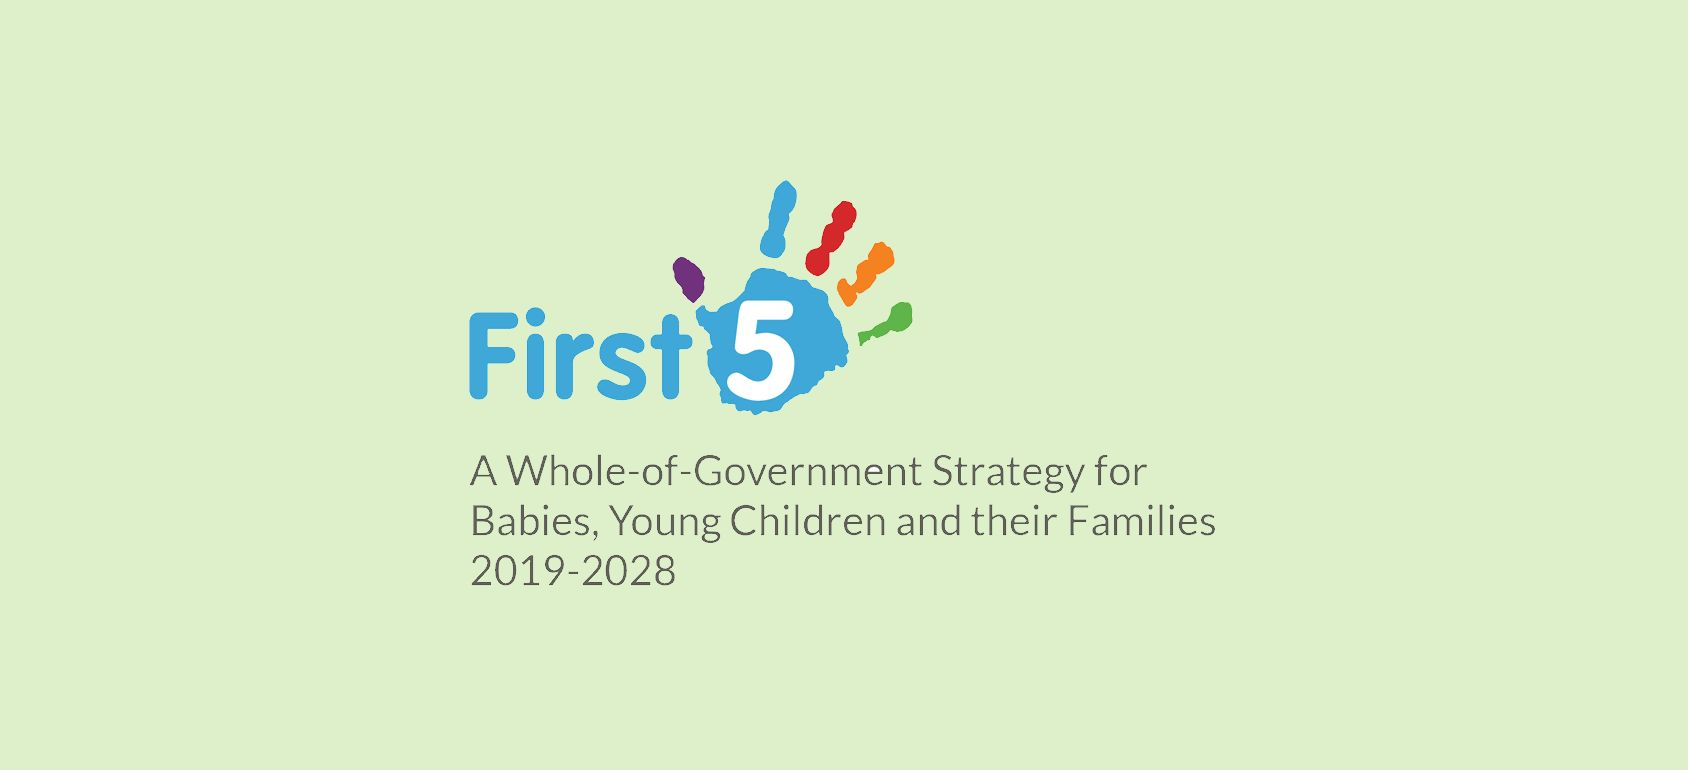 Government launches First 5, A Whole-of-Government Strategy for Babies, Young Children and their Families